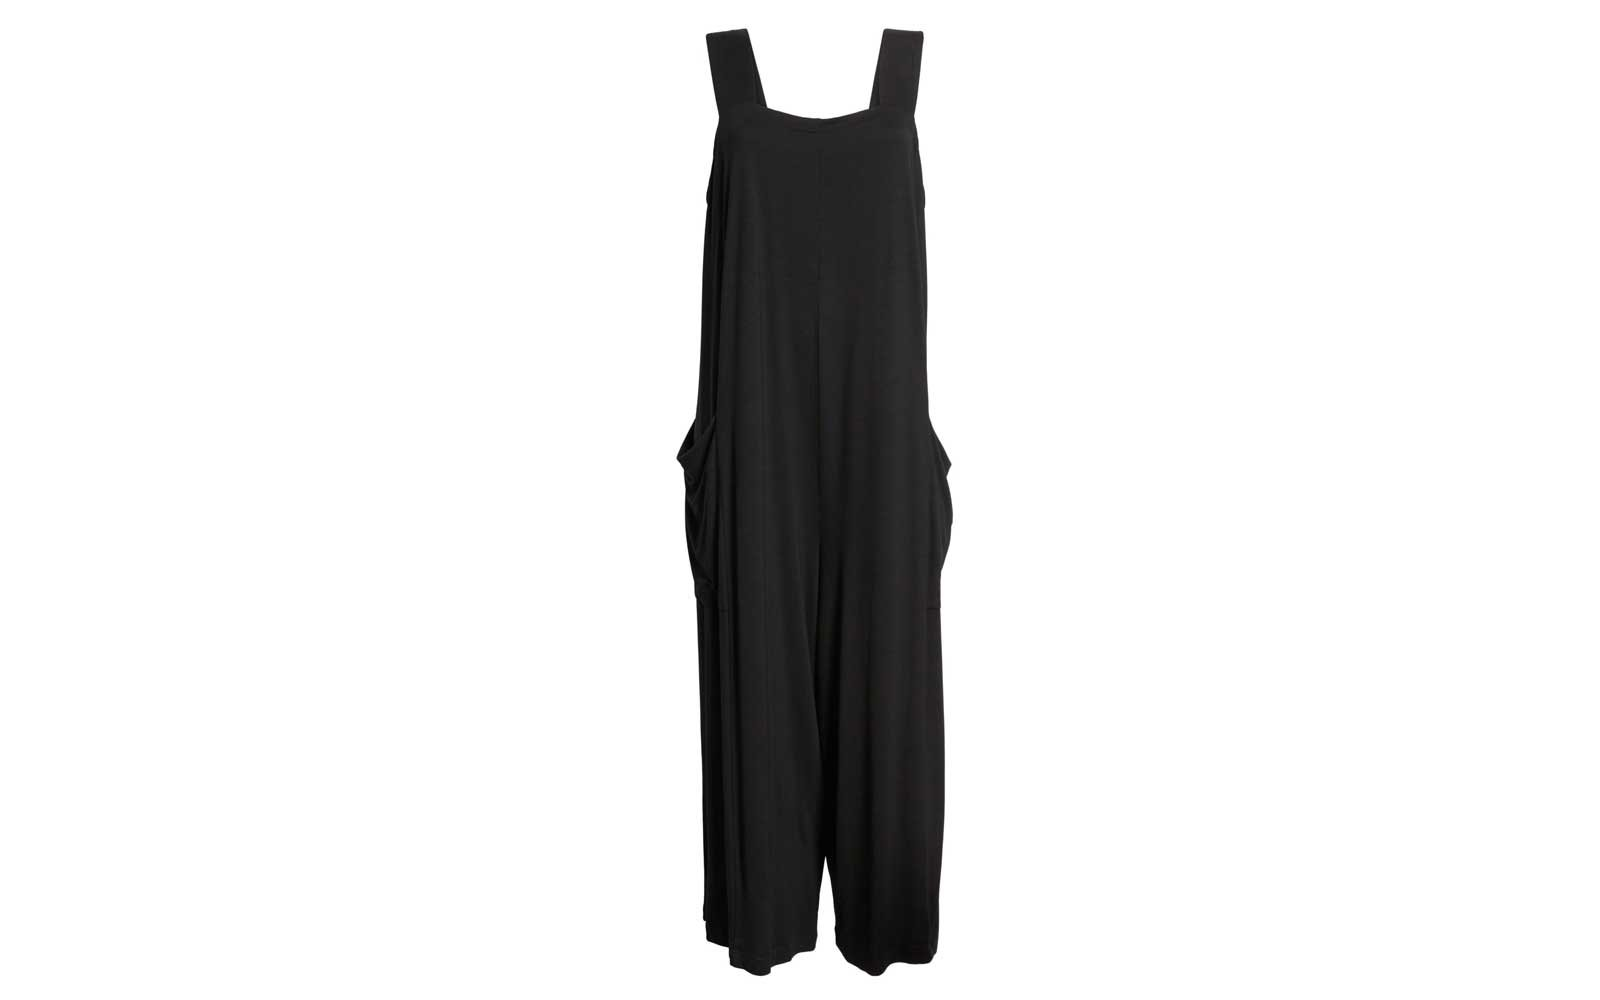 Eileen Fisher Jersey knit Jumpsuit Romper